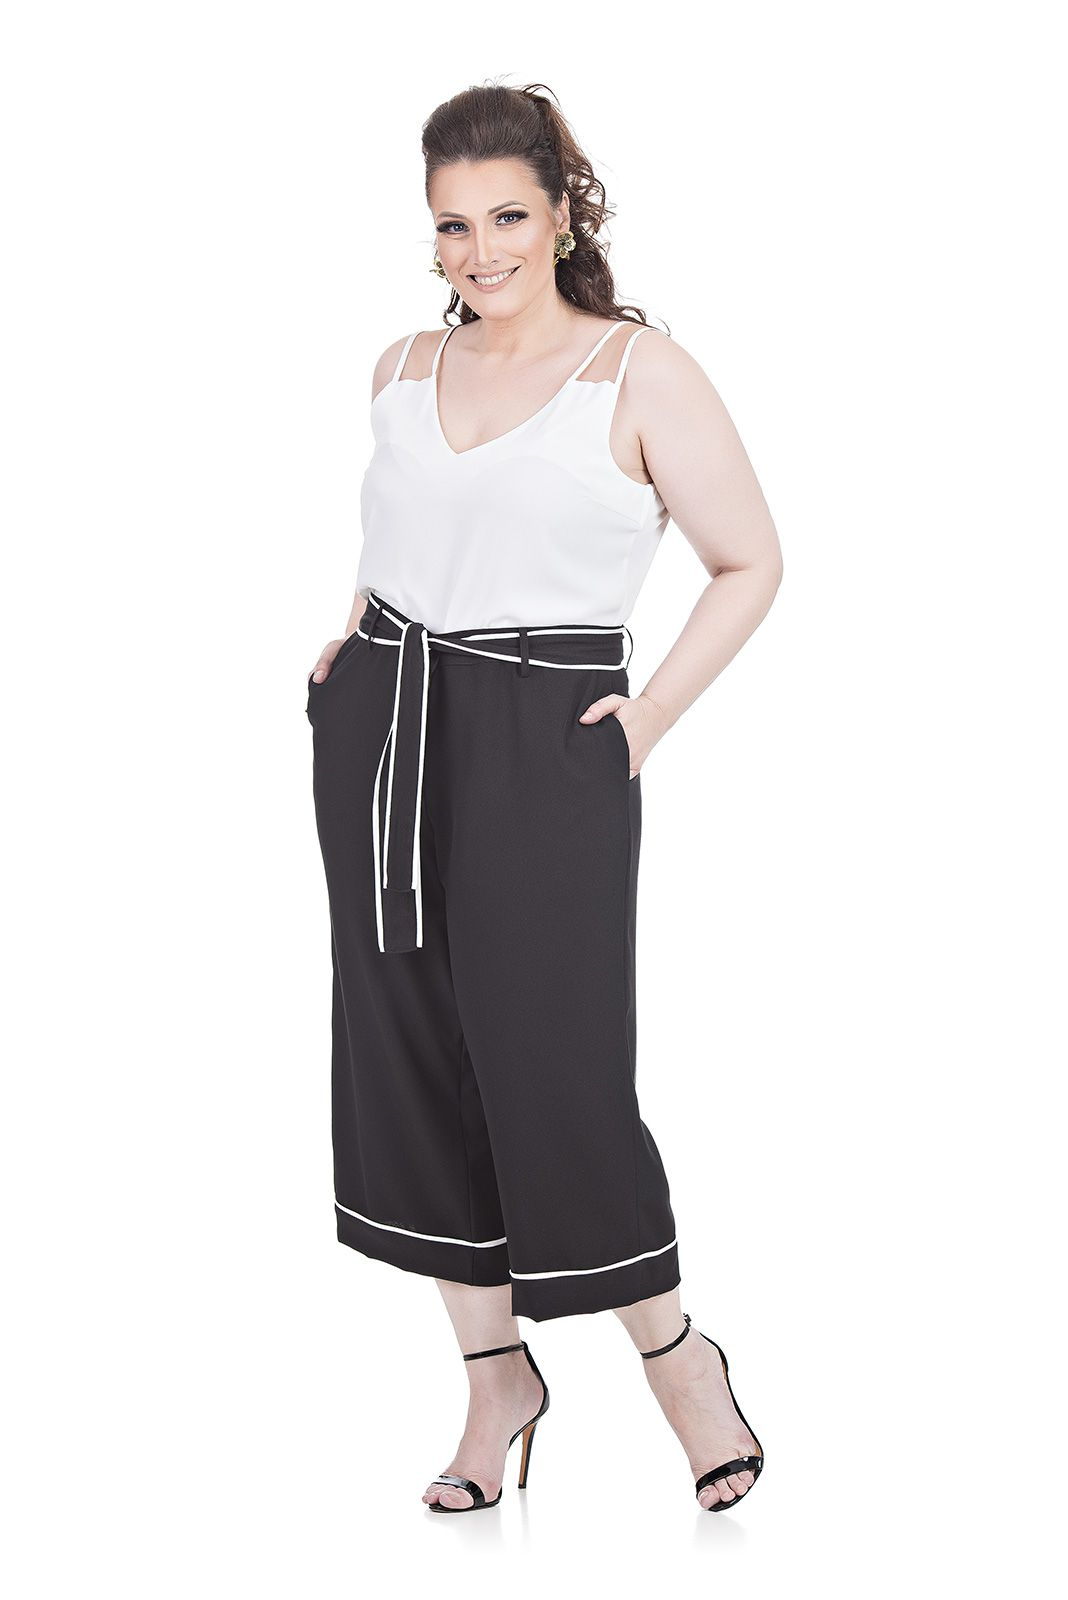 Regata 2 alças Plus Size